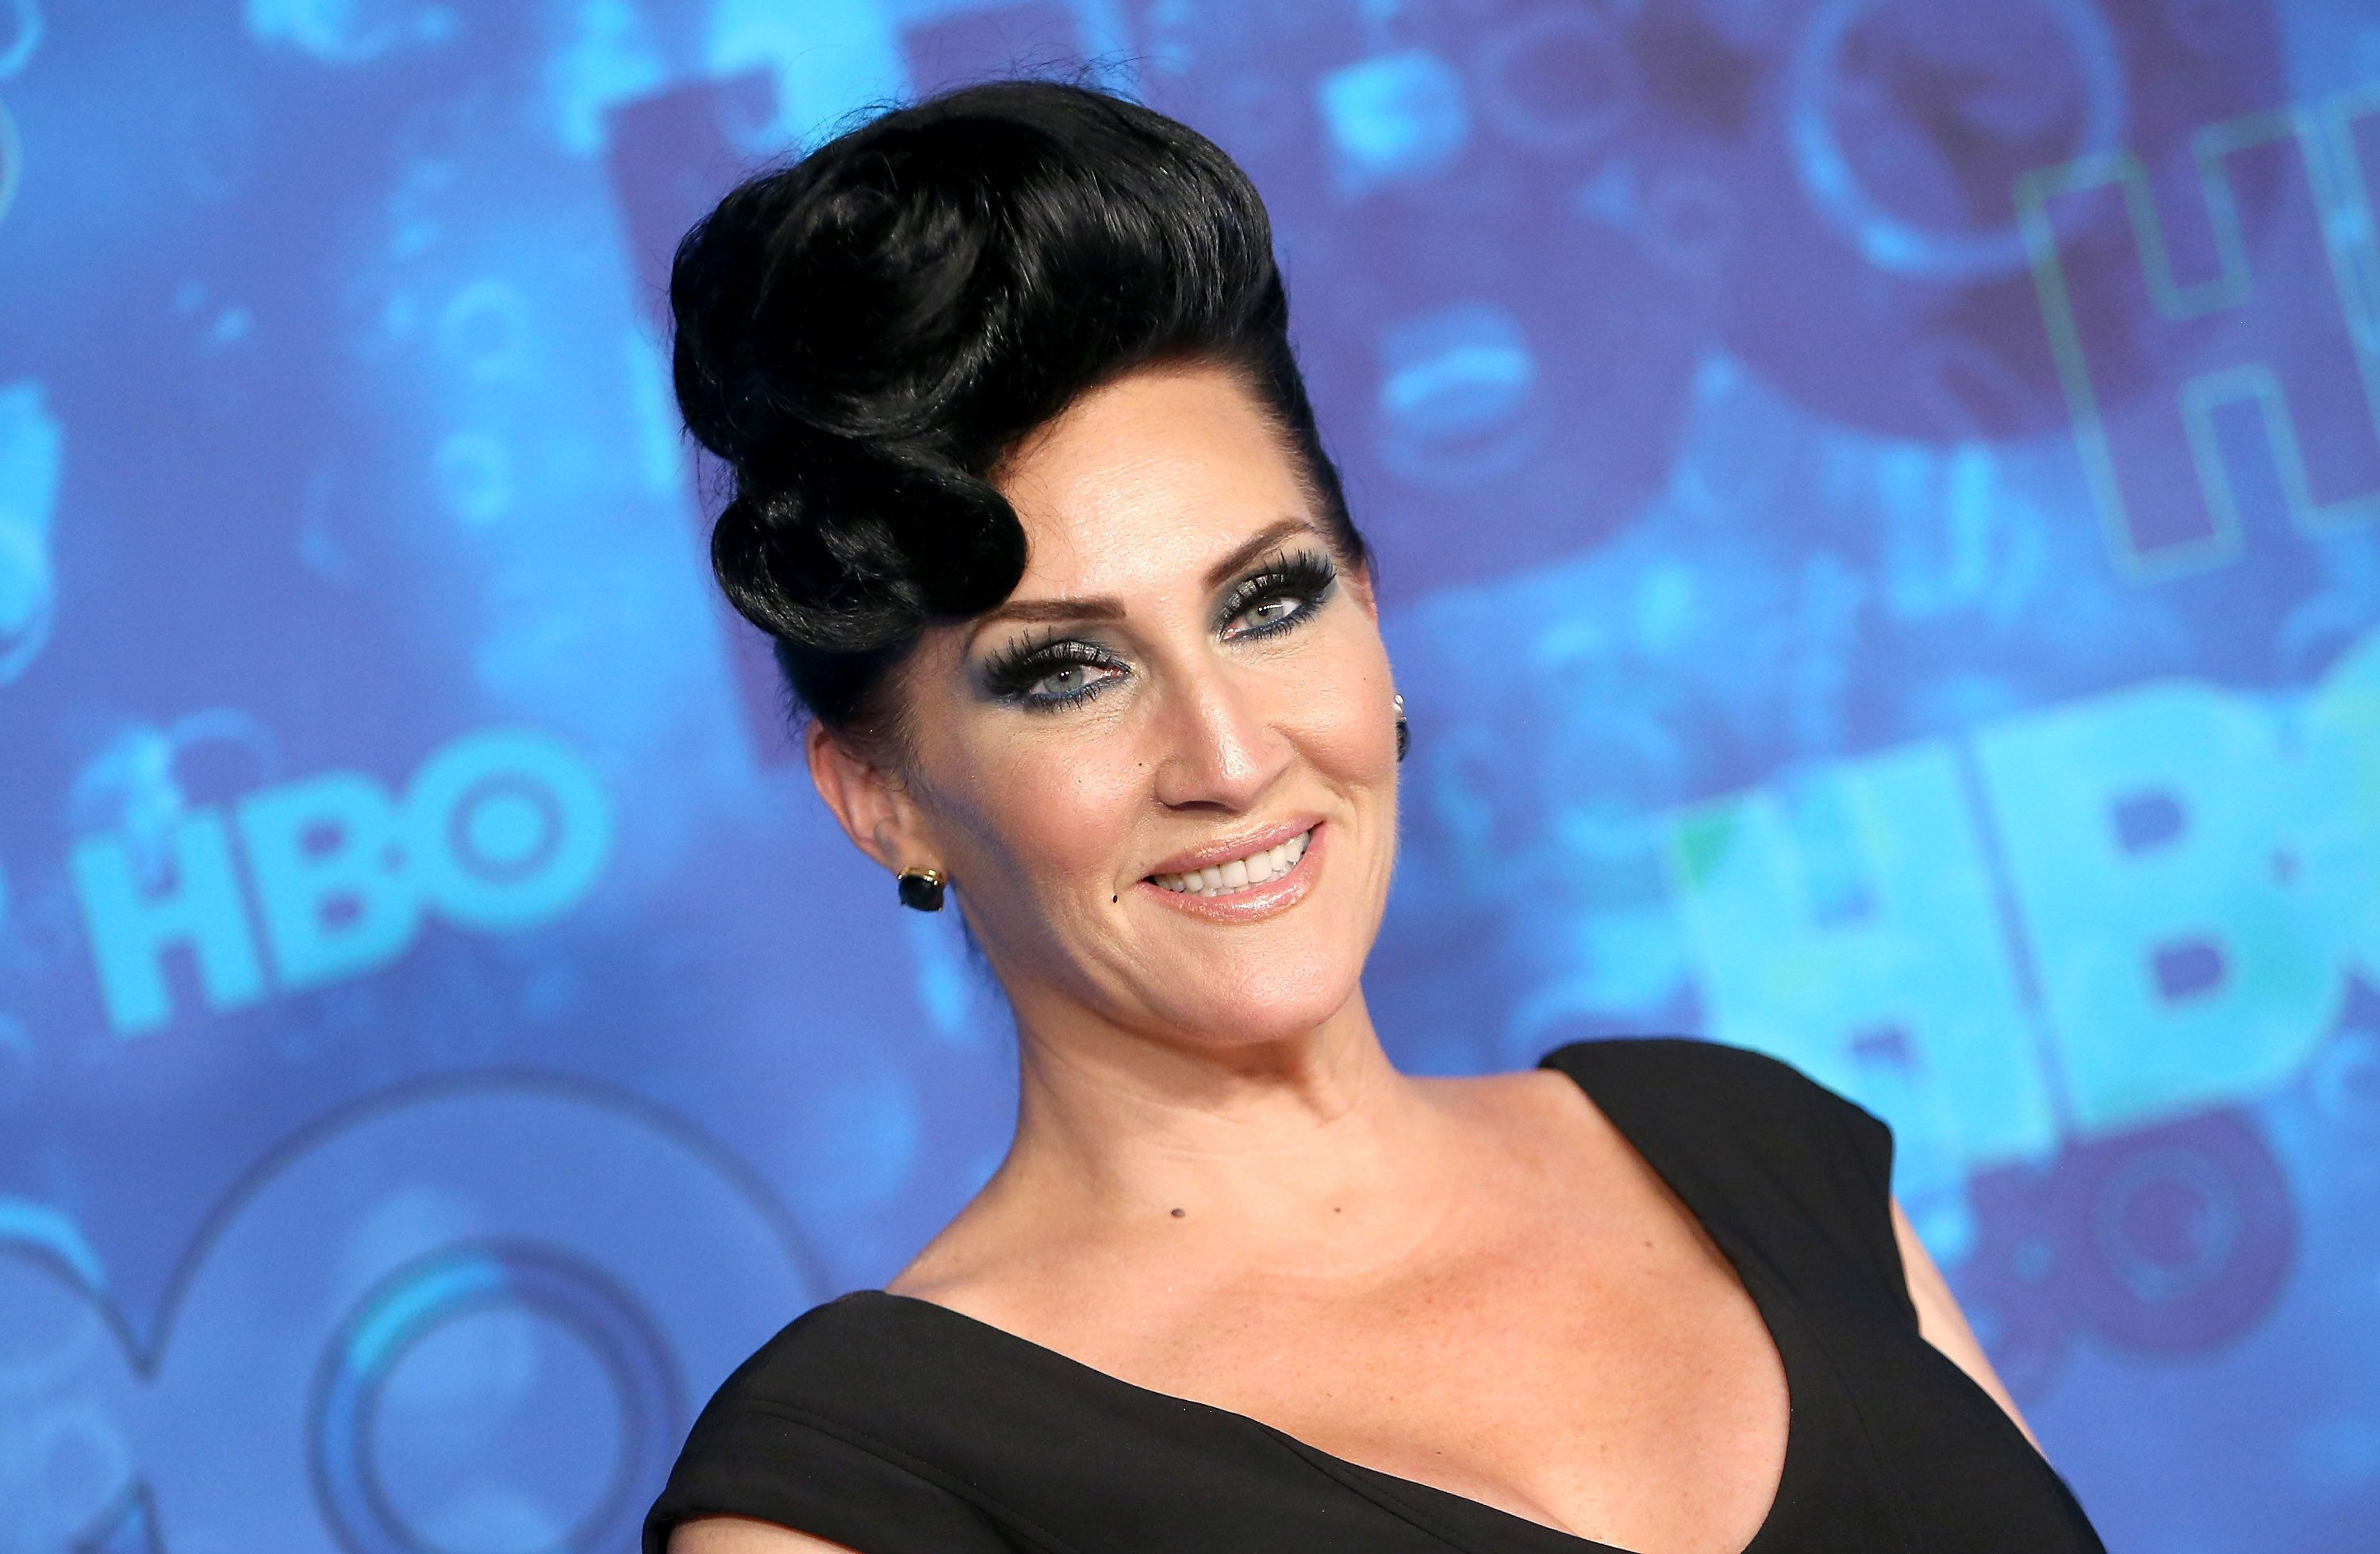 Michelle Visage Gives Us All The T On Adore Delano's 'All Stars'